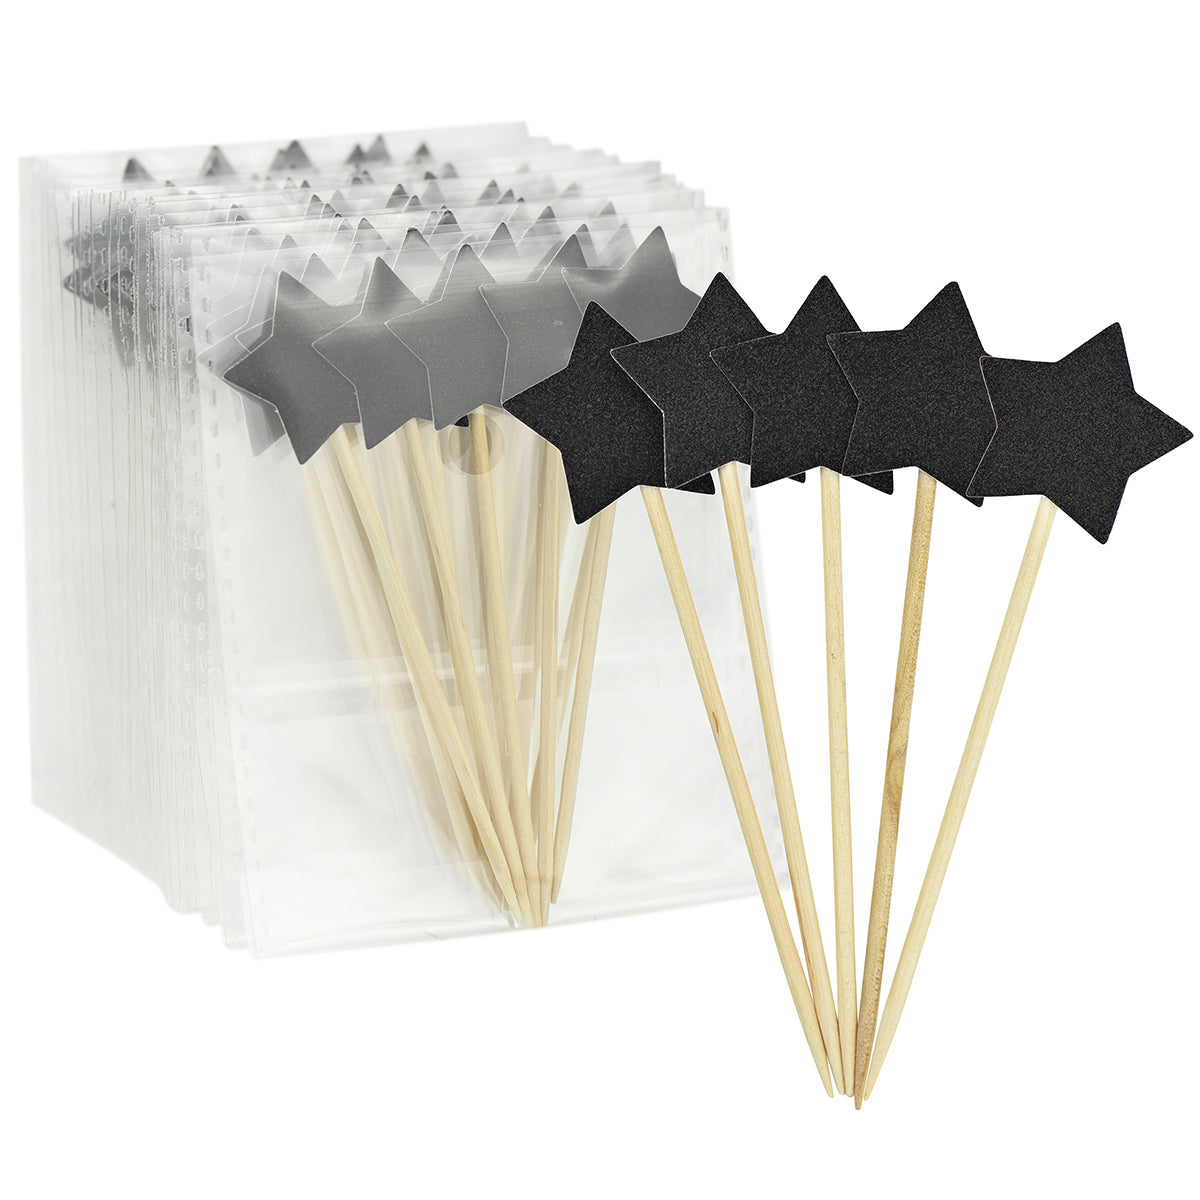 Five pieces of black star wooden cake topper picks, with 9 packs of the star topper picks behind.